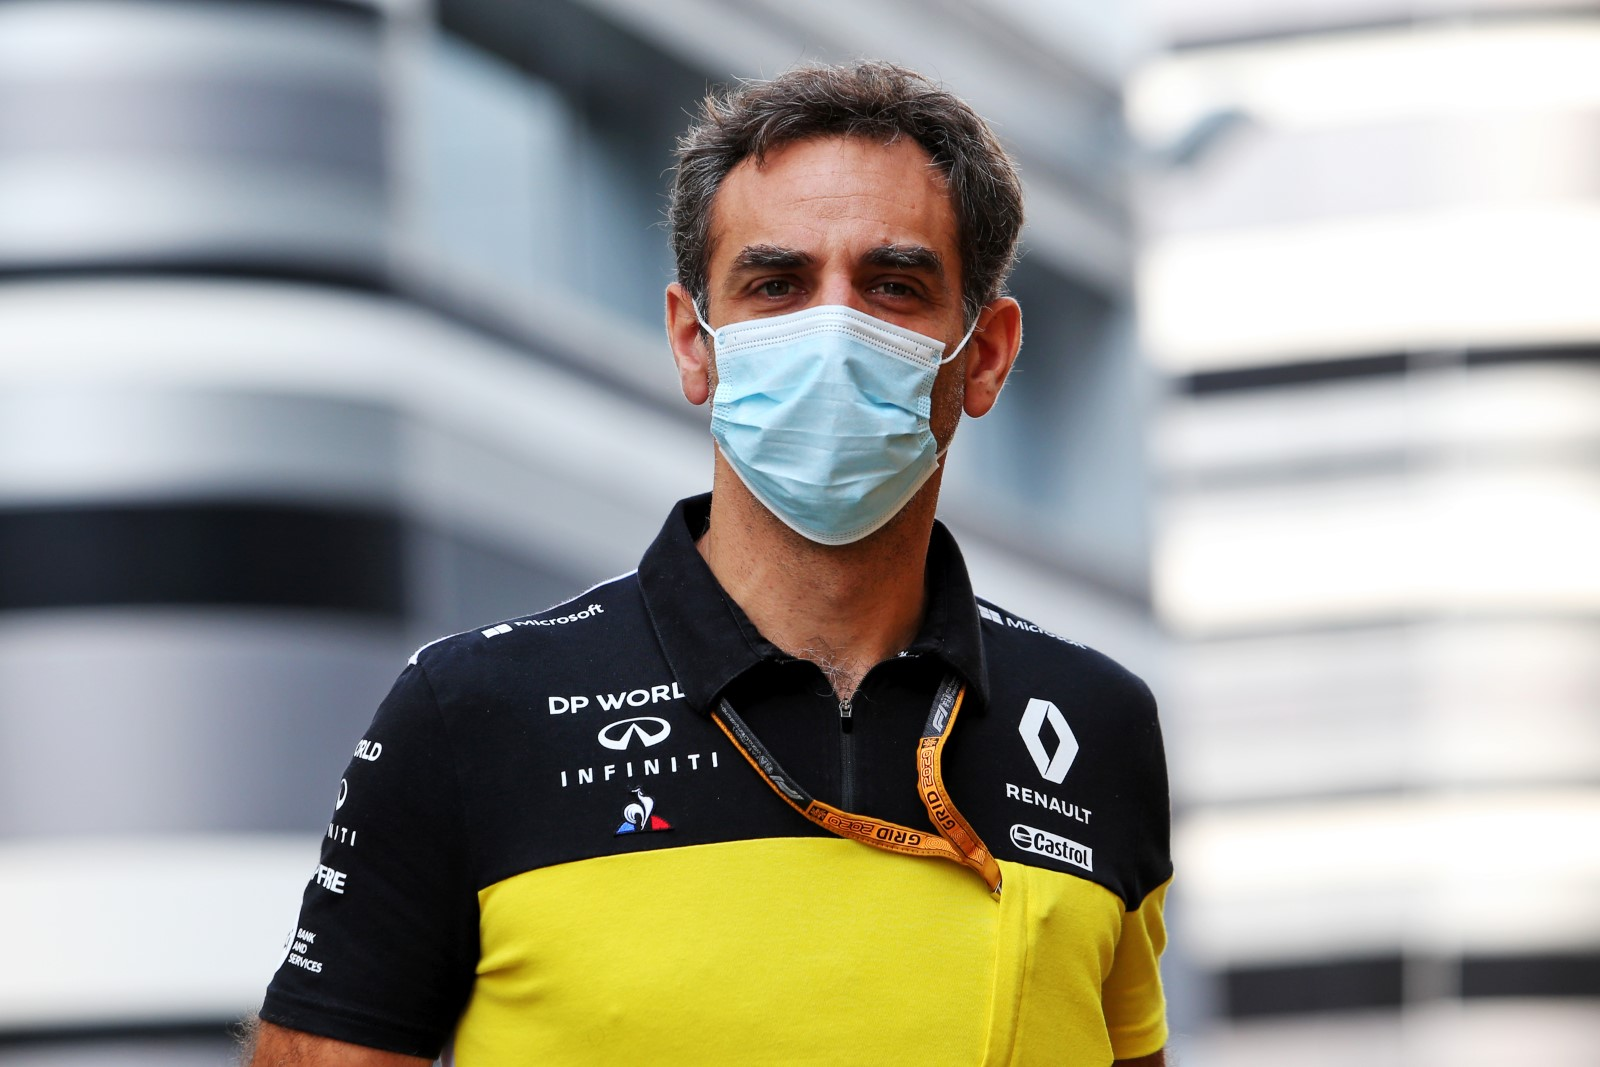 Former Renault team boss praised: 'From second to last to podiums'